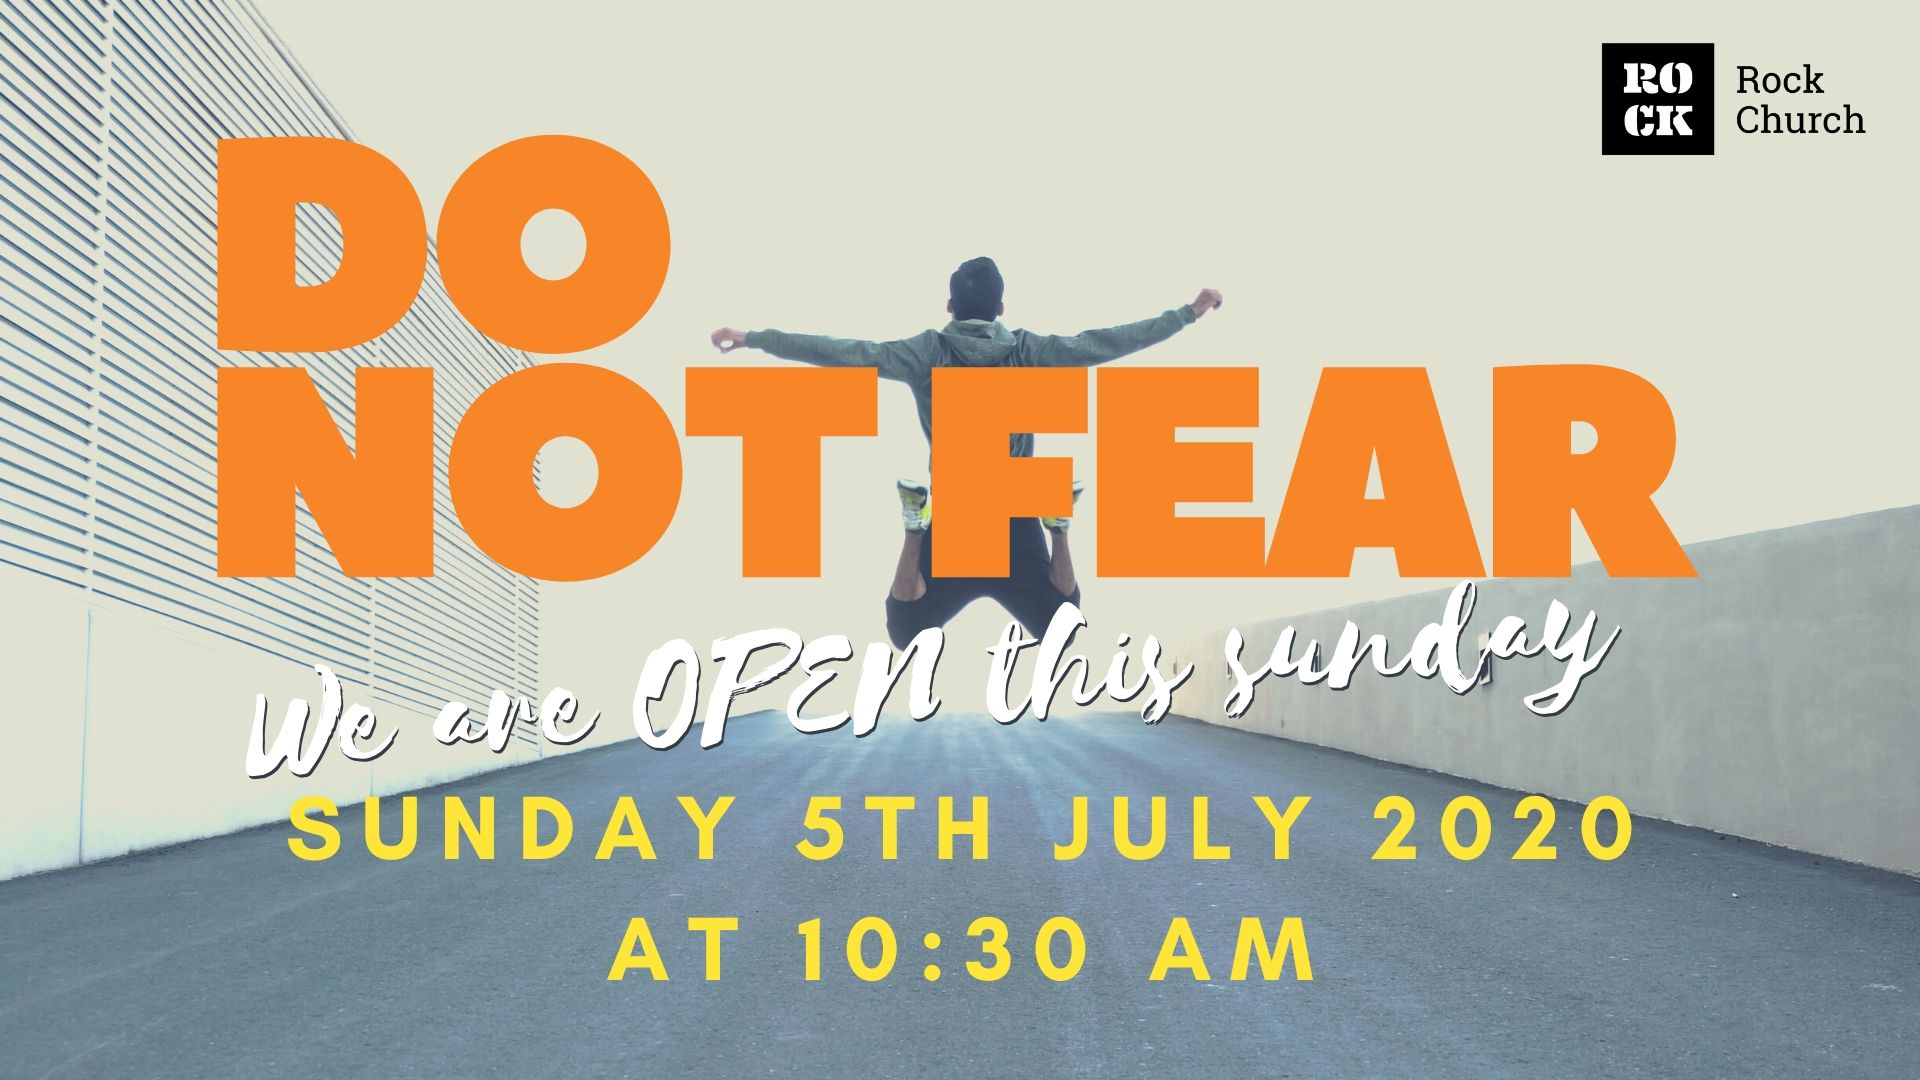 Do Not Fear - We are OPEN this Sunday - Sunday 5th July 2020 a 10:30am